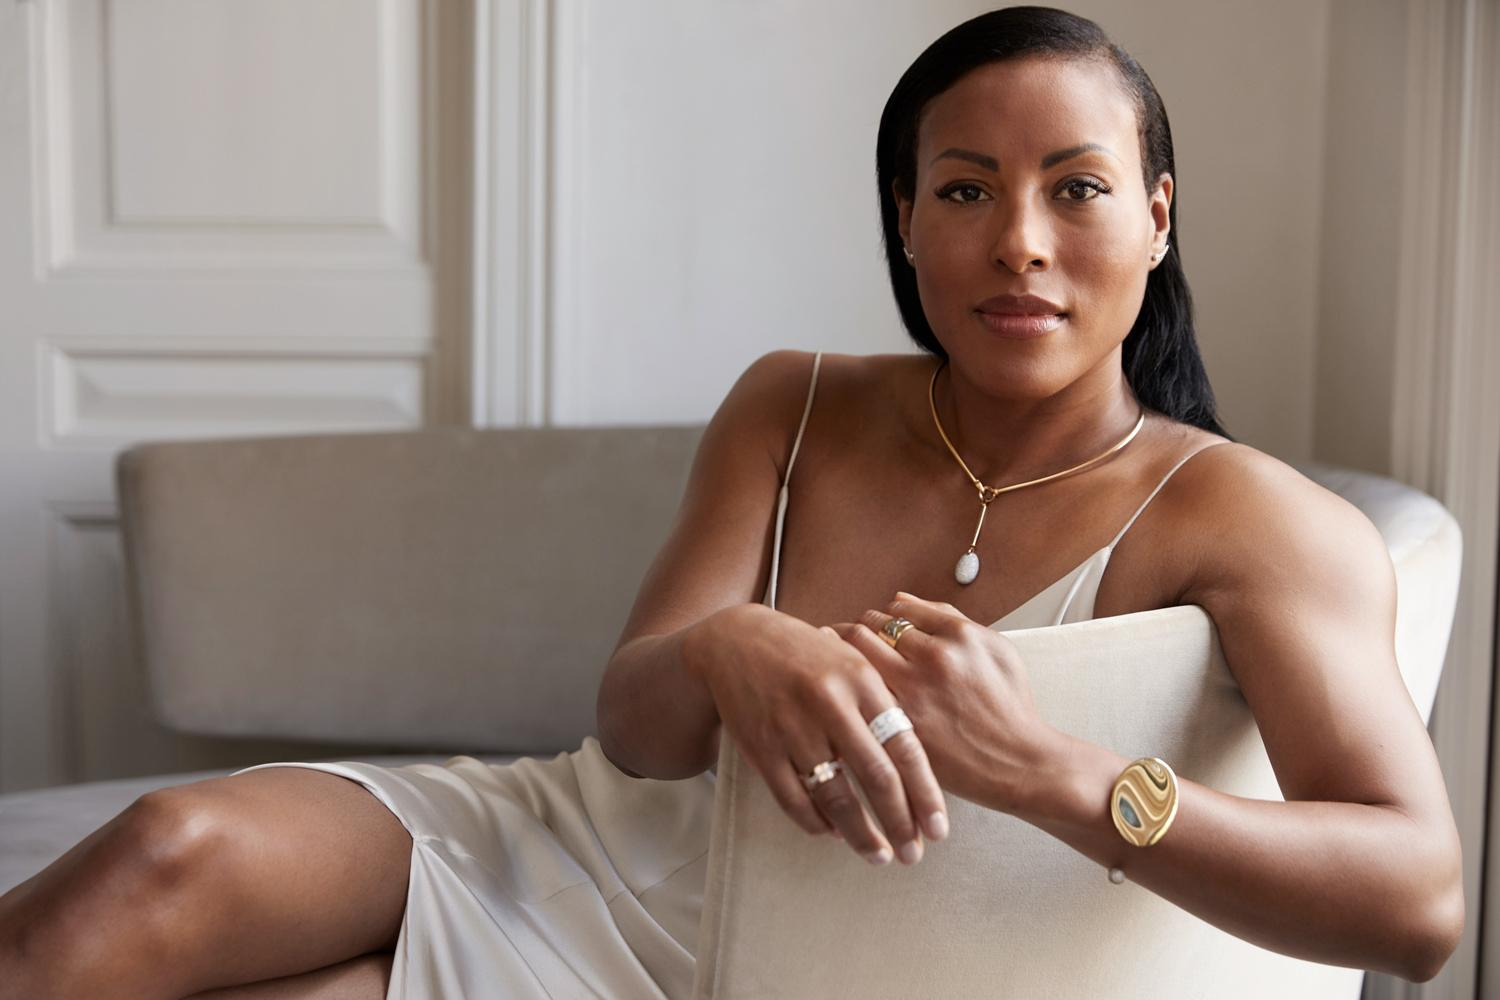 Cecilia Braekhus Is A Multi Award Winning Boxing Champion From Norway Who Has Fought Hard In The Ring And Outside Getting To Make